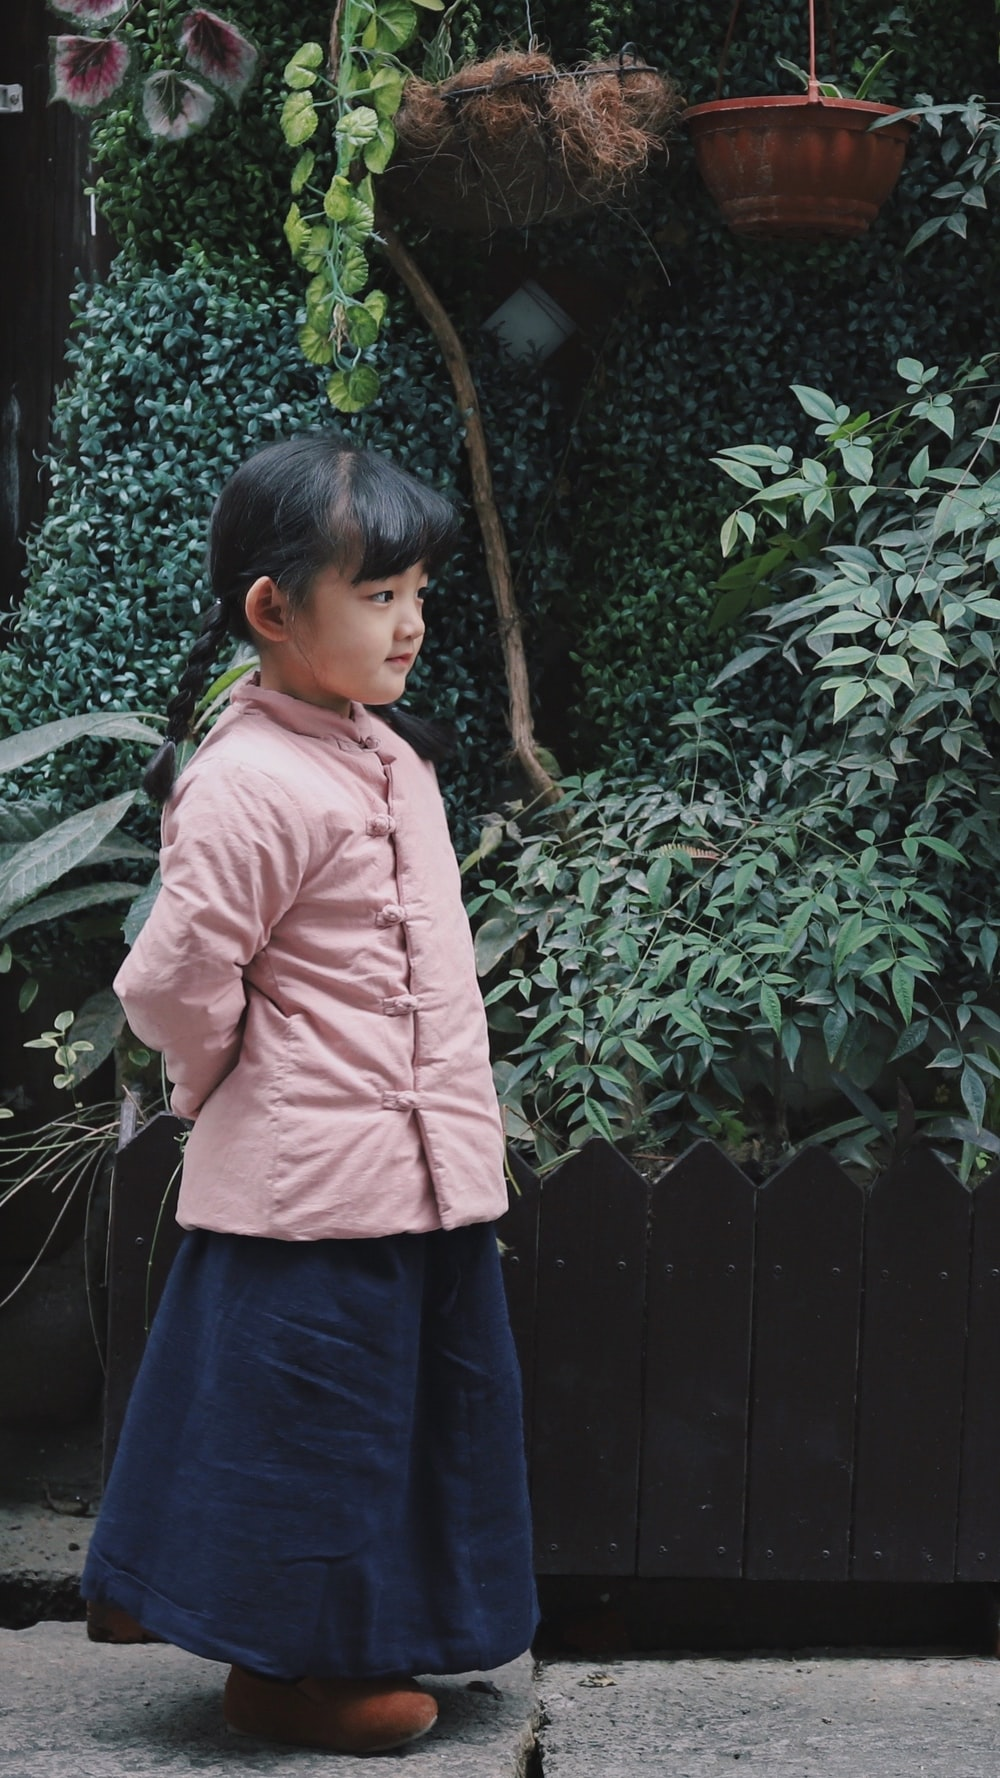 girl wearing pink jacket near plants